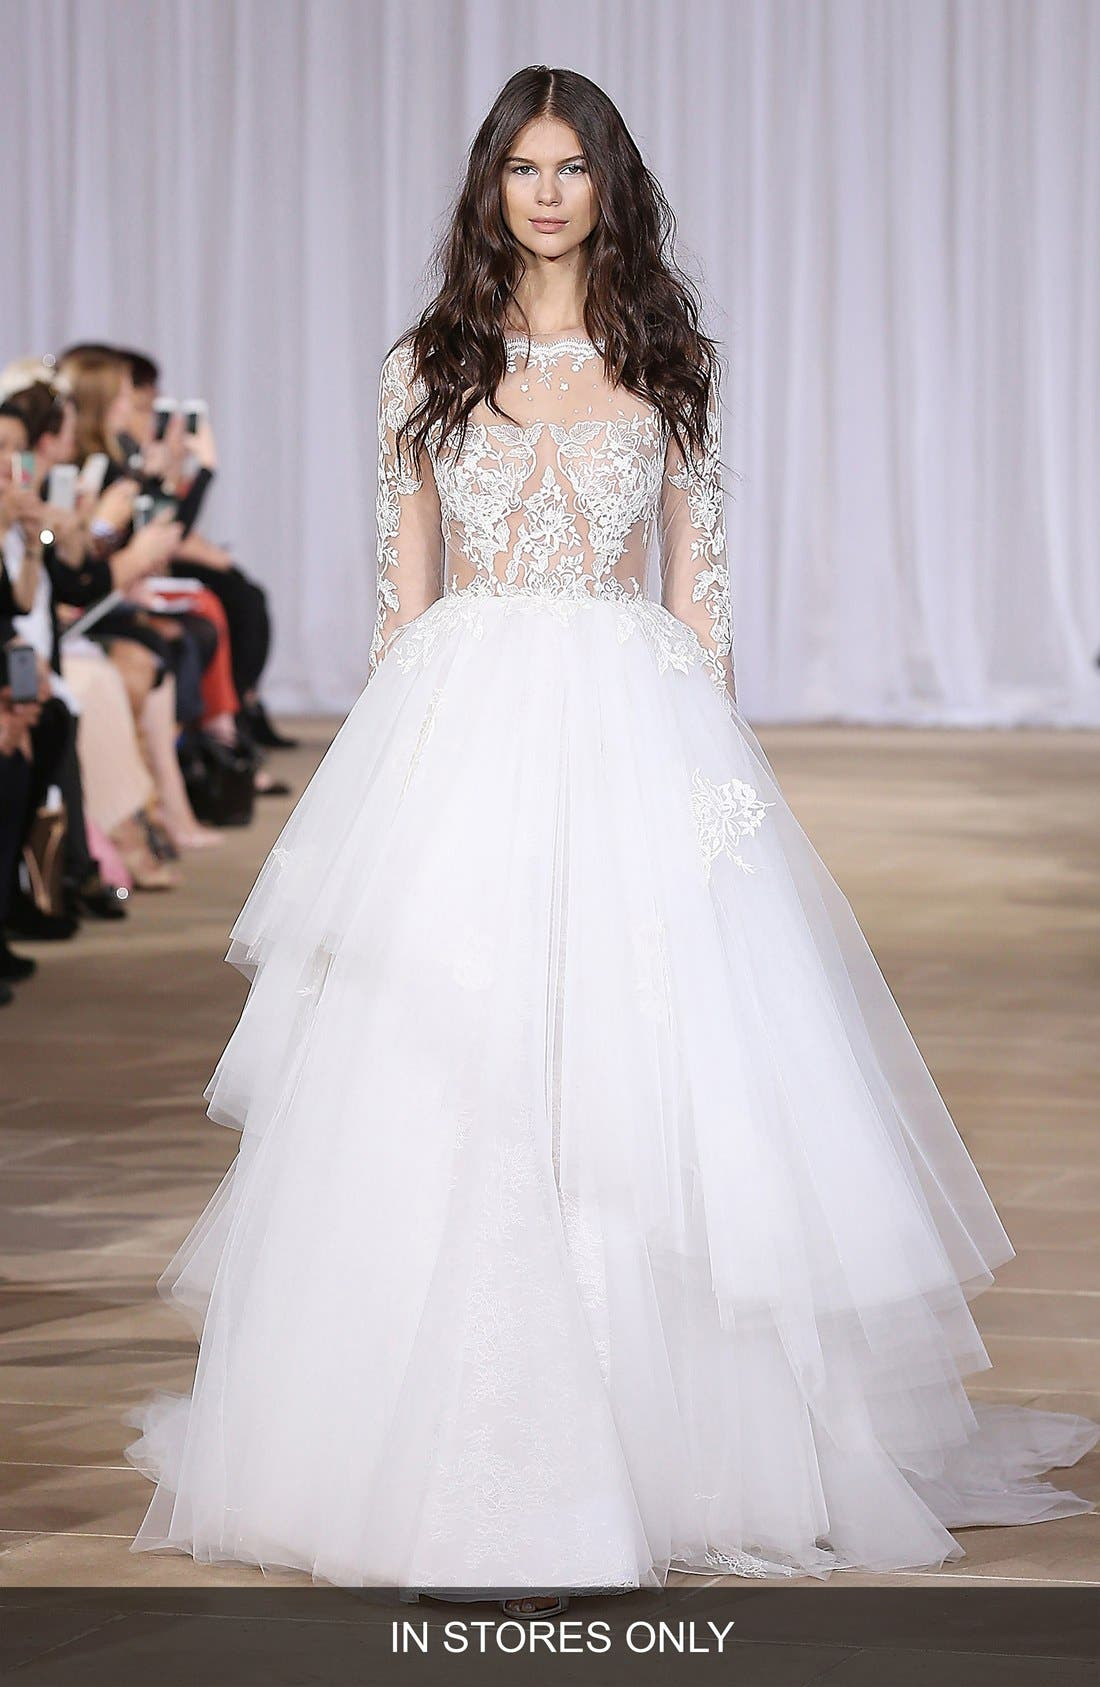 Aliora Embroidered Illusion & Tulle Ballgown,                             Main thumbnail 1, color,                             900